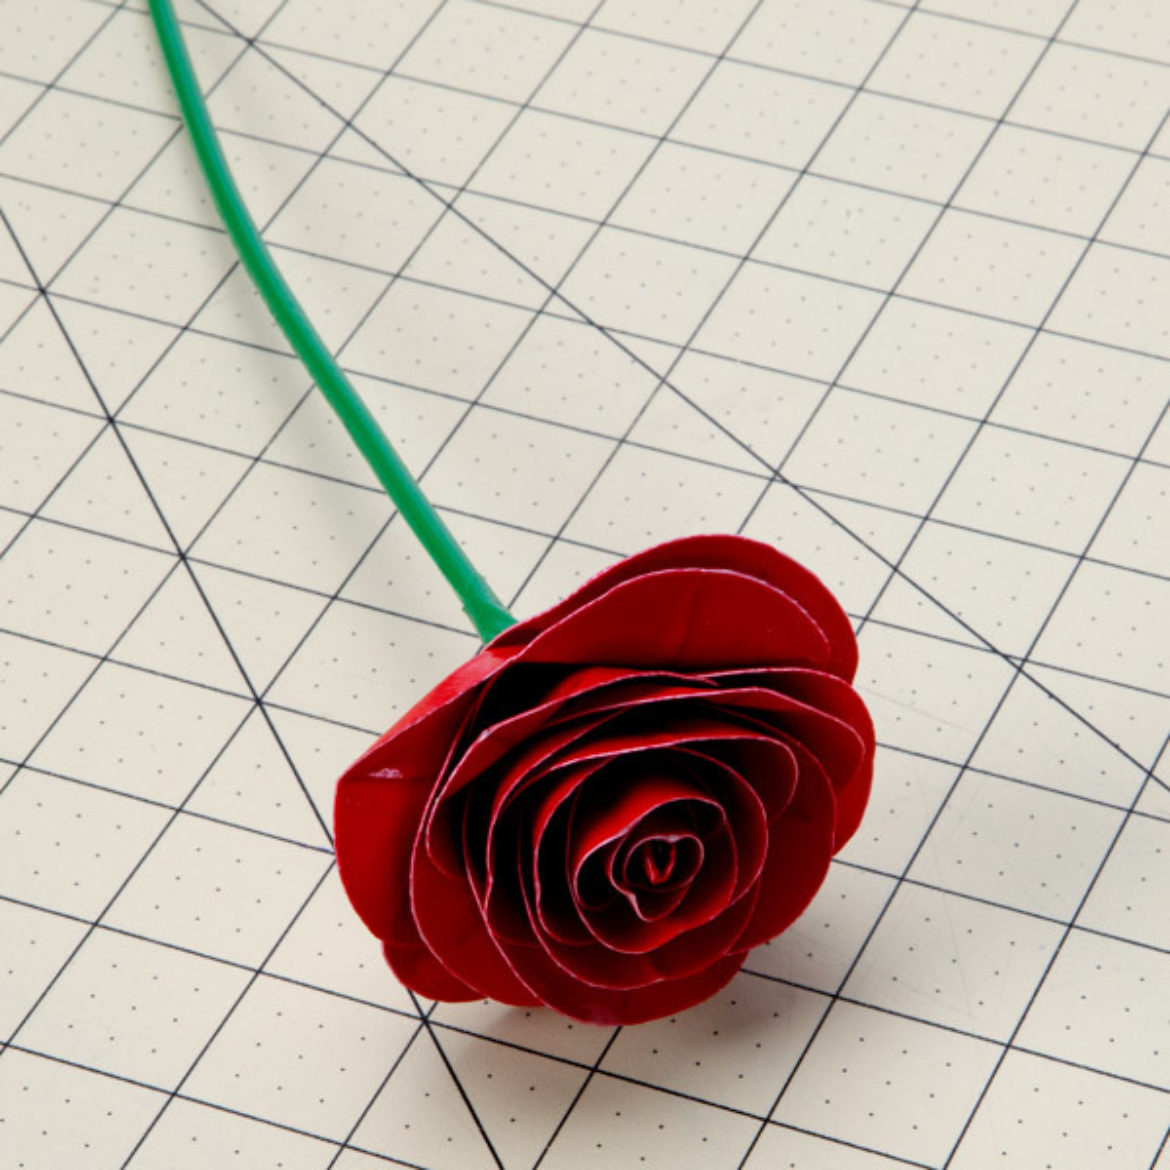 previous steps repeated until there are enough petals wrapped around each other to form a rose